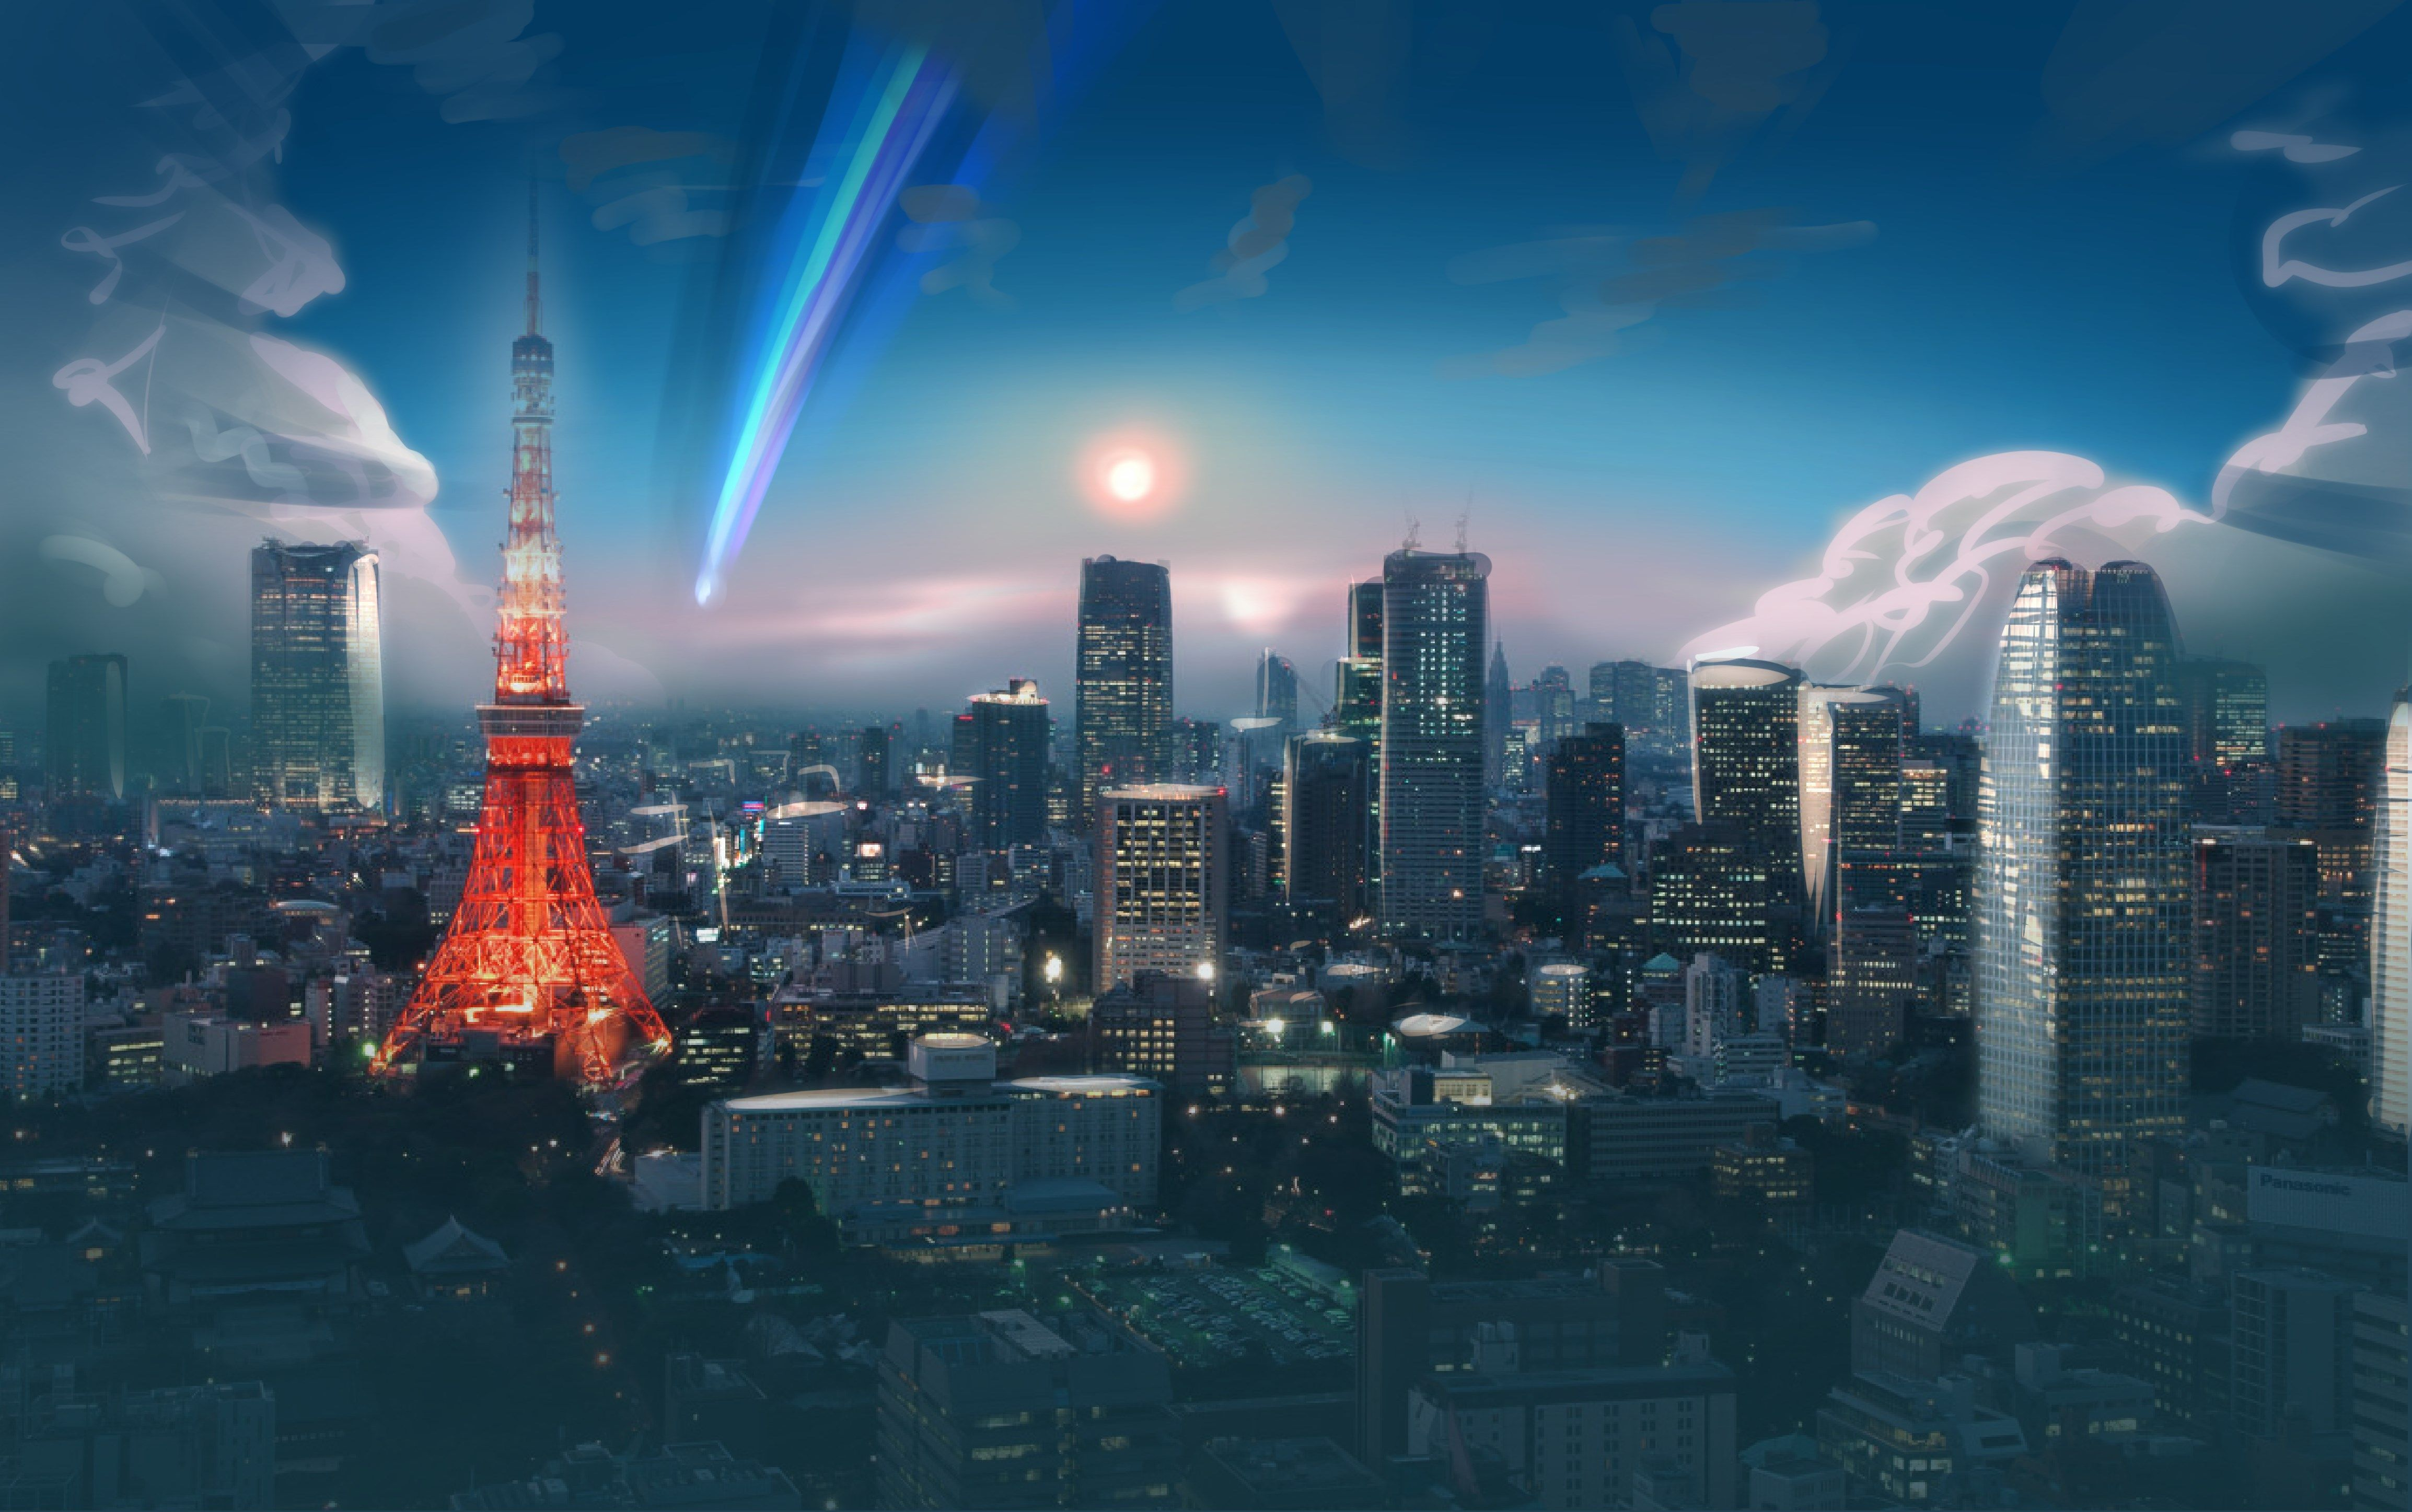 Anime 4k Wallpaper: Your Name Anime Landscape Wallpapers